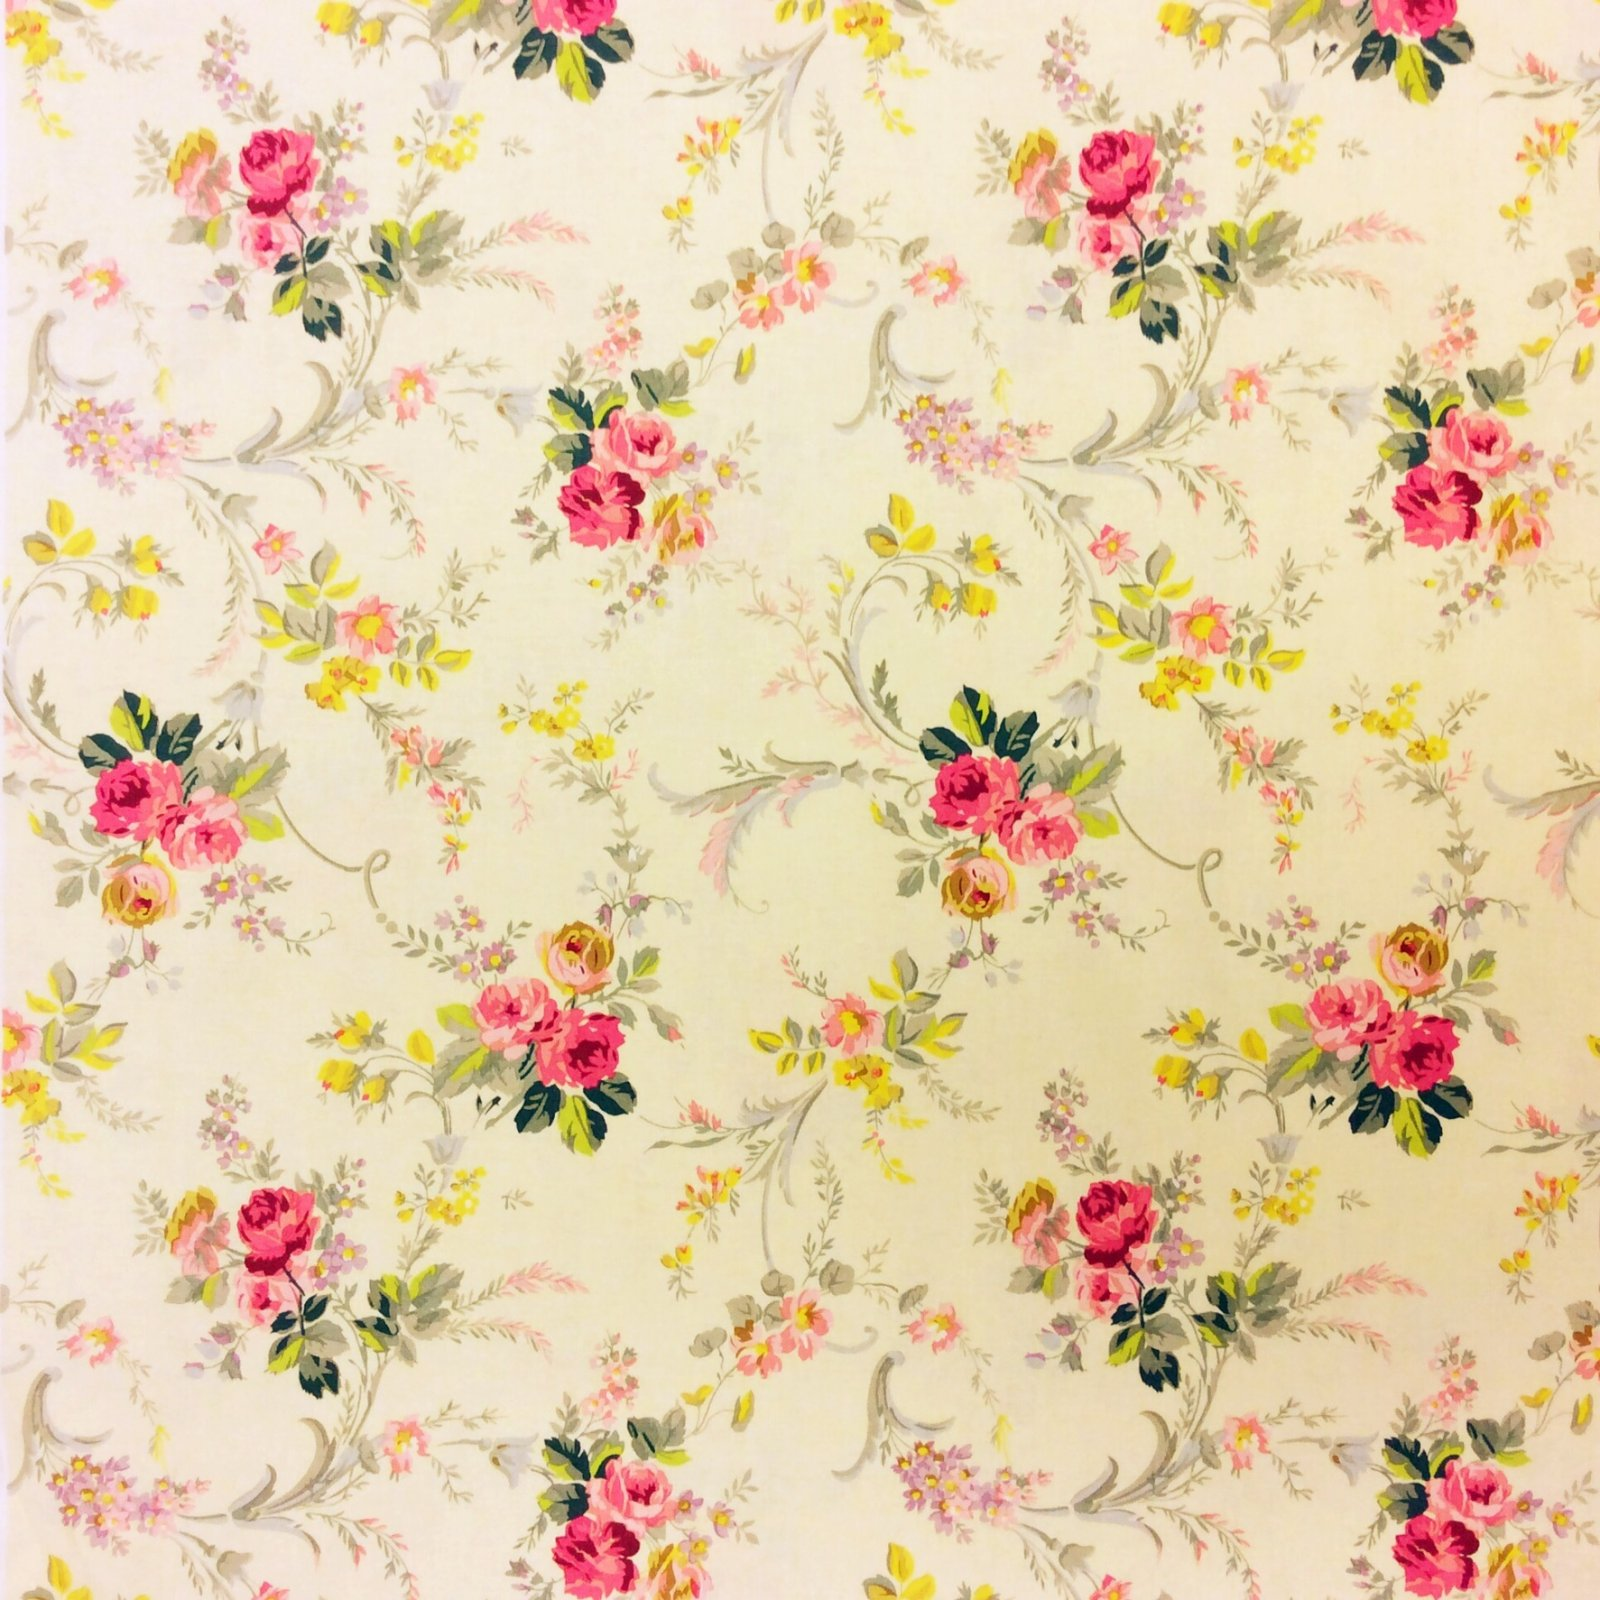 English Garden French Cabbage Rose Floral Cotton Quilt Fabric MD301